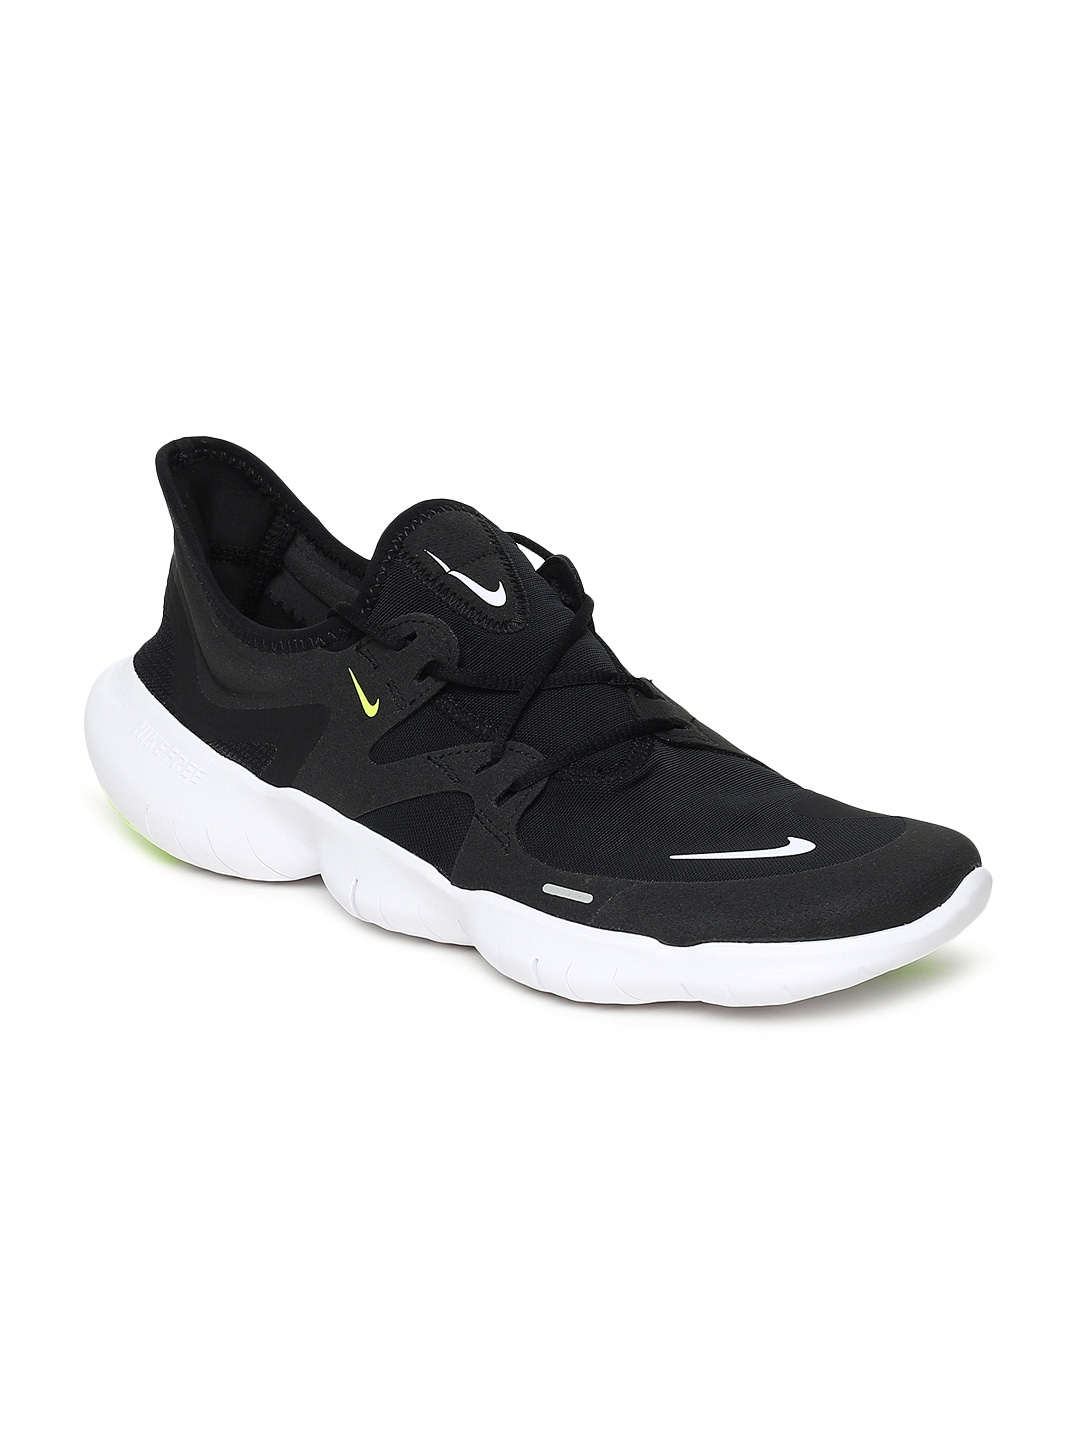 quality design 8d2b1 89e13 Nike Sport Shoe - Buy Nike Sport Shoes At Best Price Online   Myntra